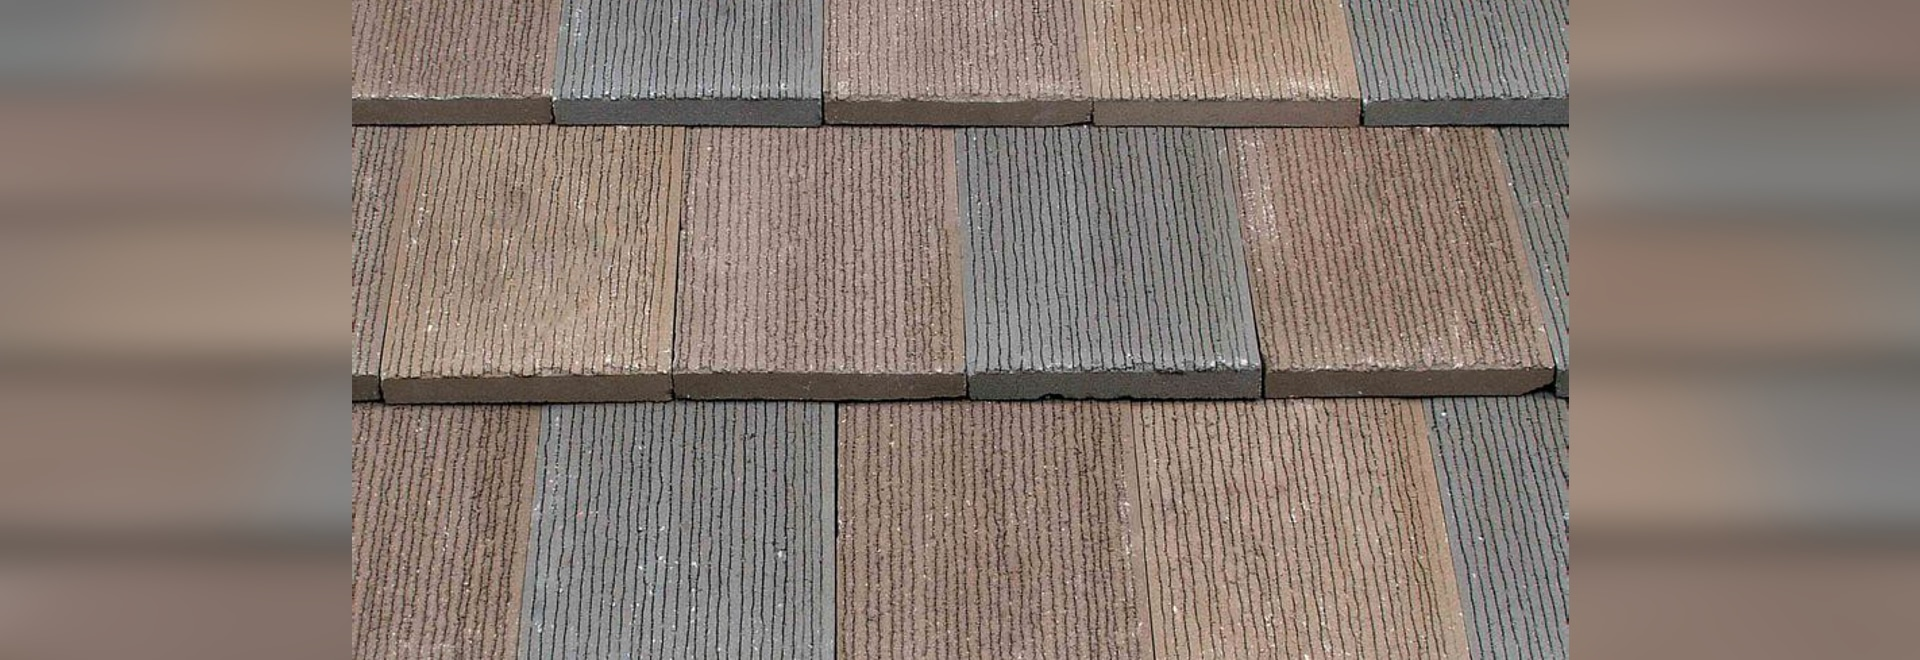 new flat roof tile by entegra roof tile - Entegra Roof Tile